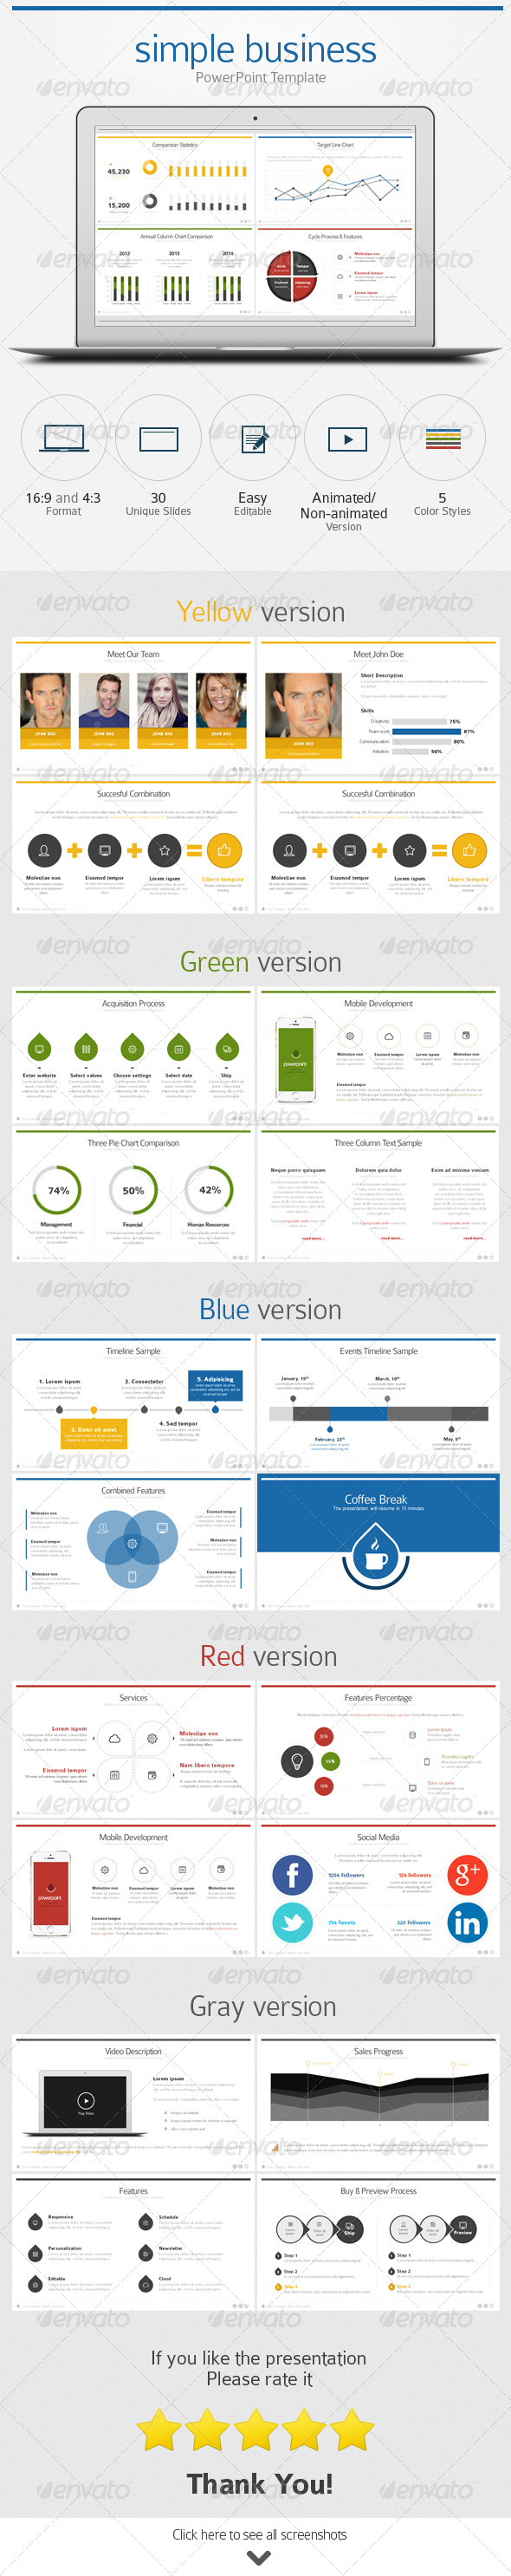 GraphicRiver Simple Business PowerPoint Template 7341773